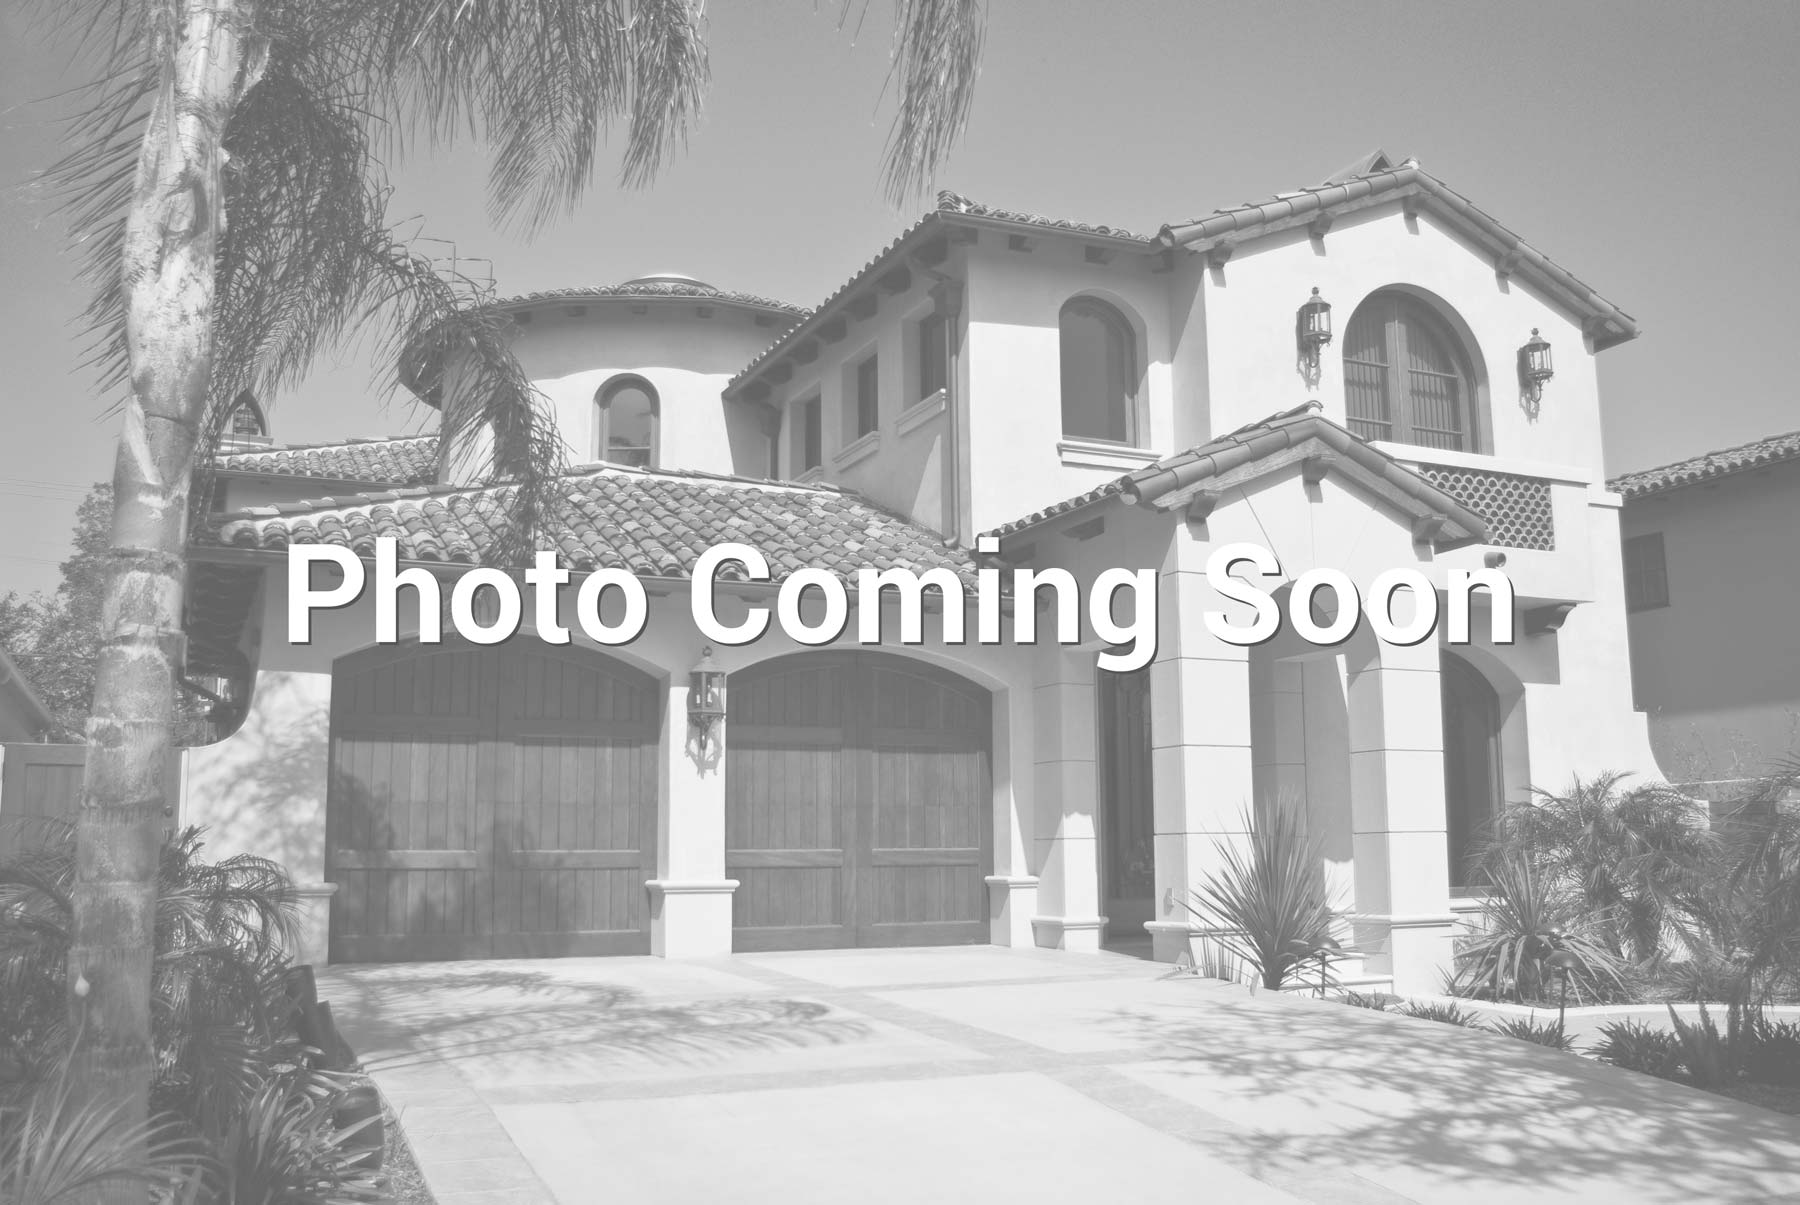 $6,300,000 - 7Br/11Ba - Home for Sale in Silverleaf At Dc Ranch, Scottsdale